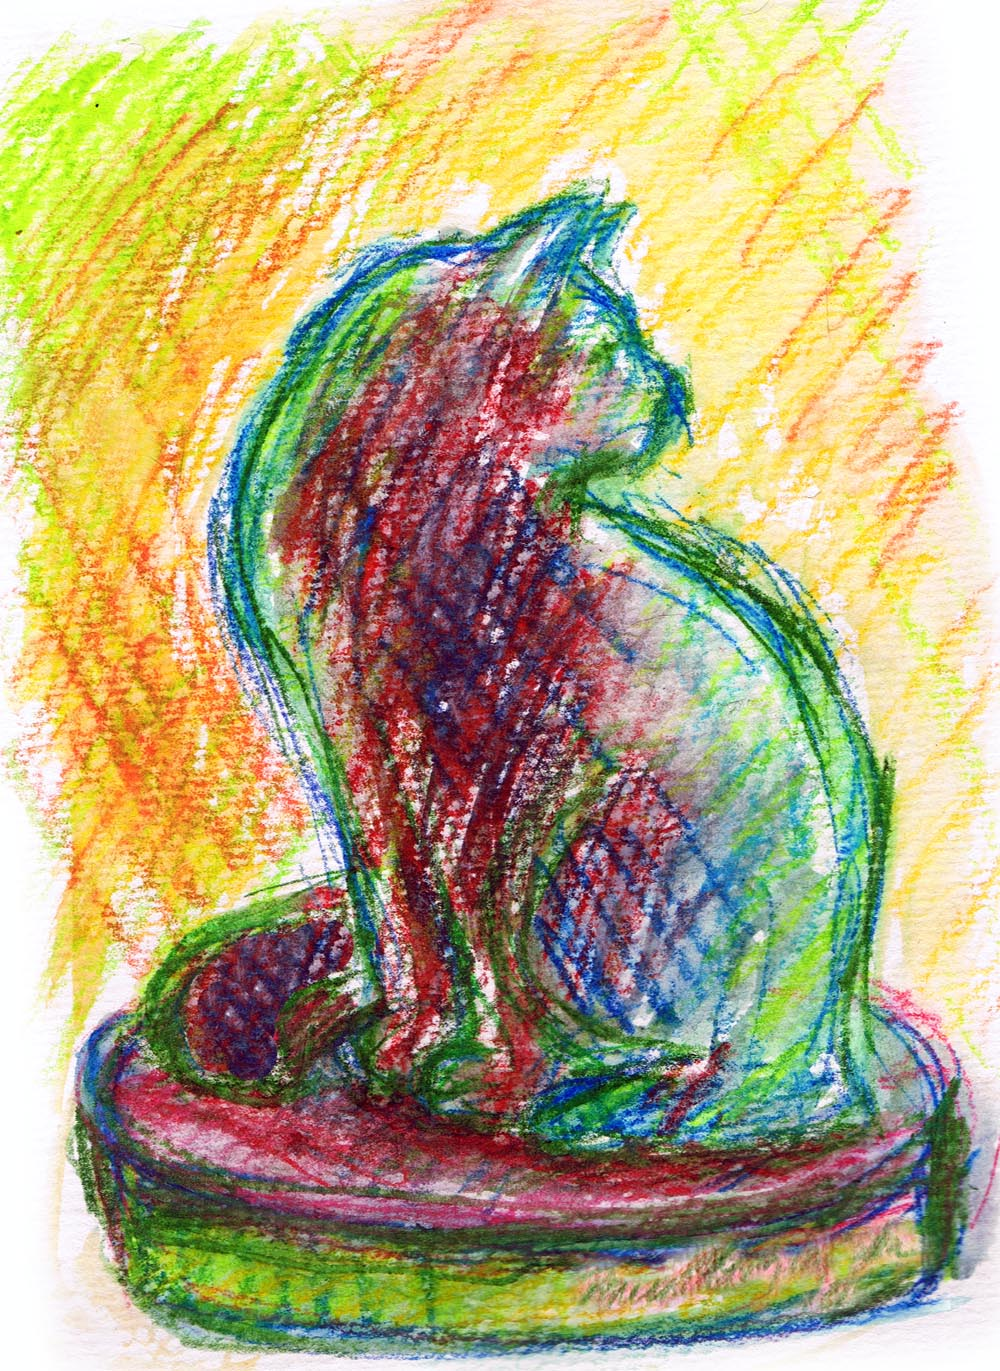 watercolor sketch of cat